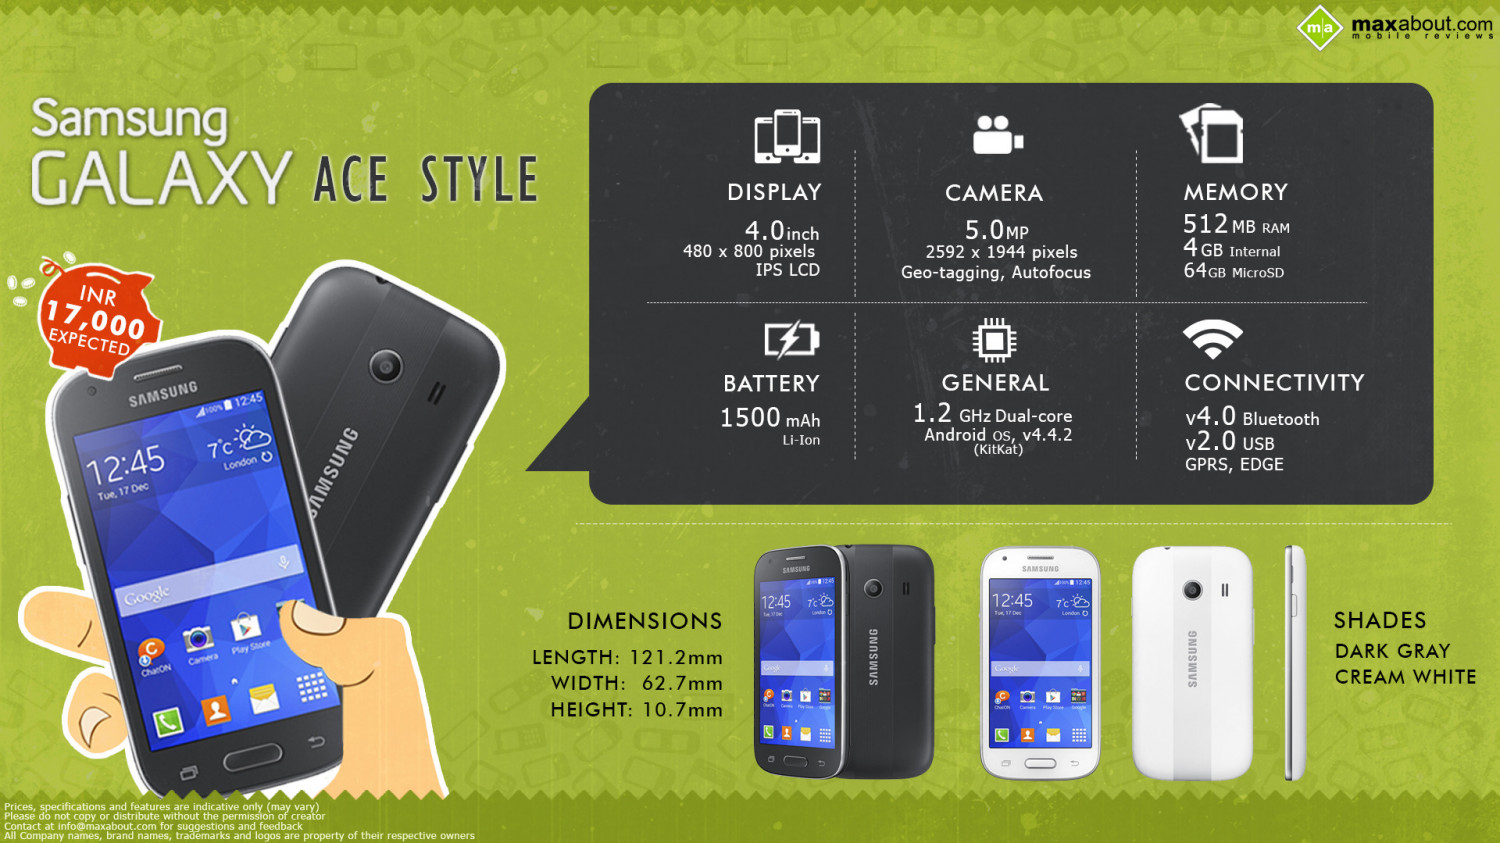 Samsung Galaxy Ace Style: Powerful and Expressive Smartphone Infographic